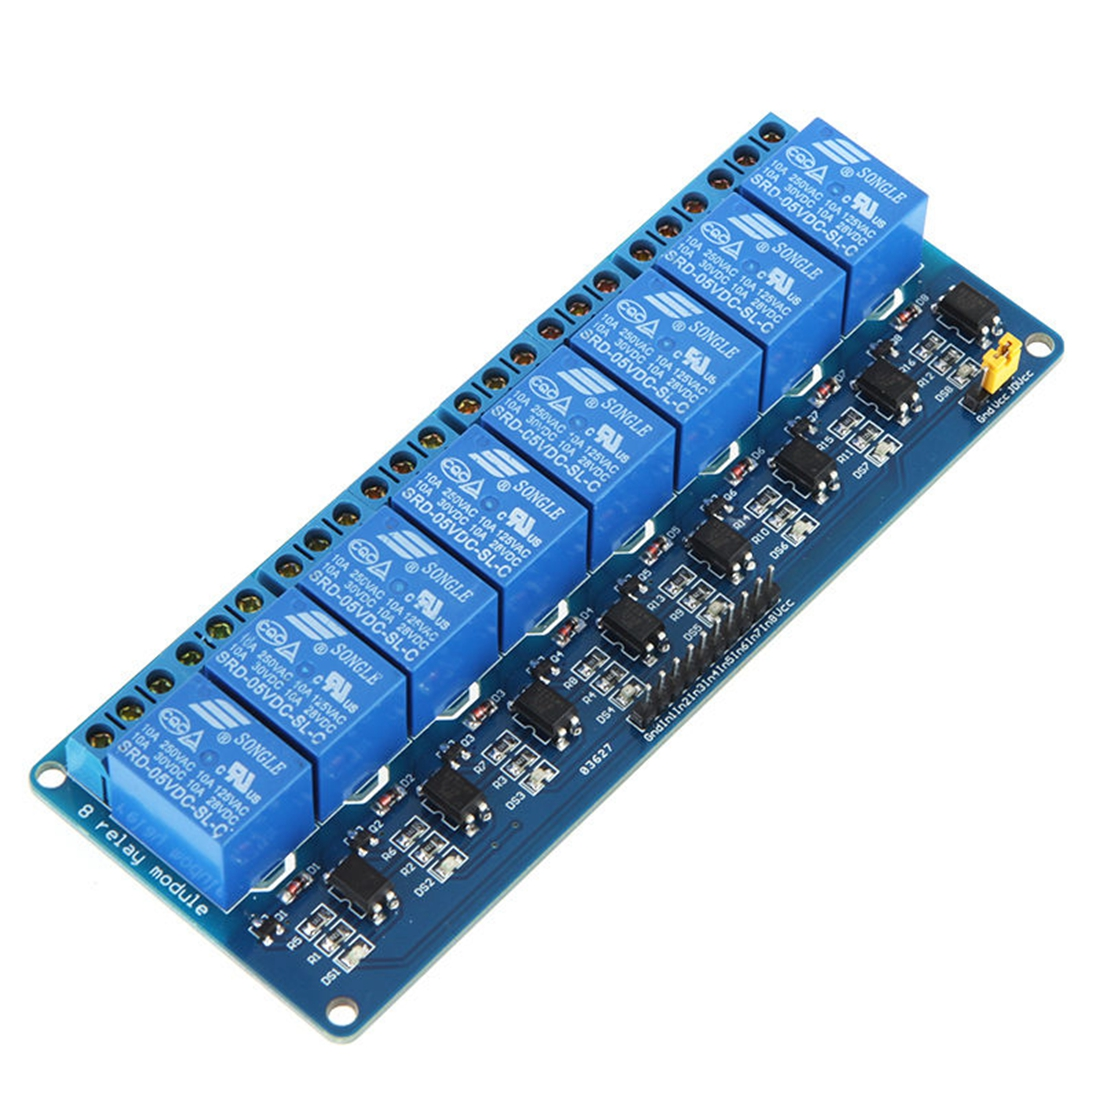 KSOL 5V 8 Channel Relay Module Board For Arduino AVR PIC MCU DSP ARM  12v 8 channel relay module board for pic avr mcu dsp arm electronic new original